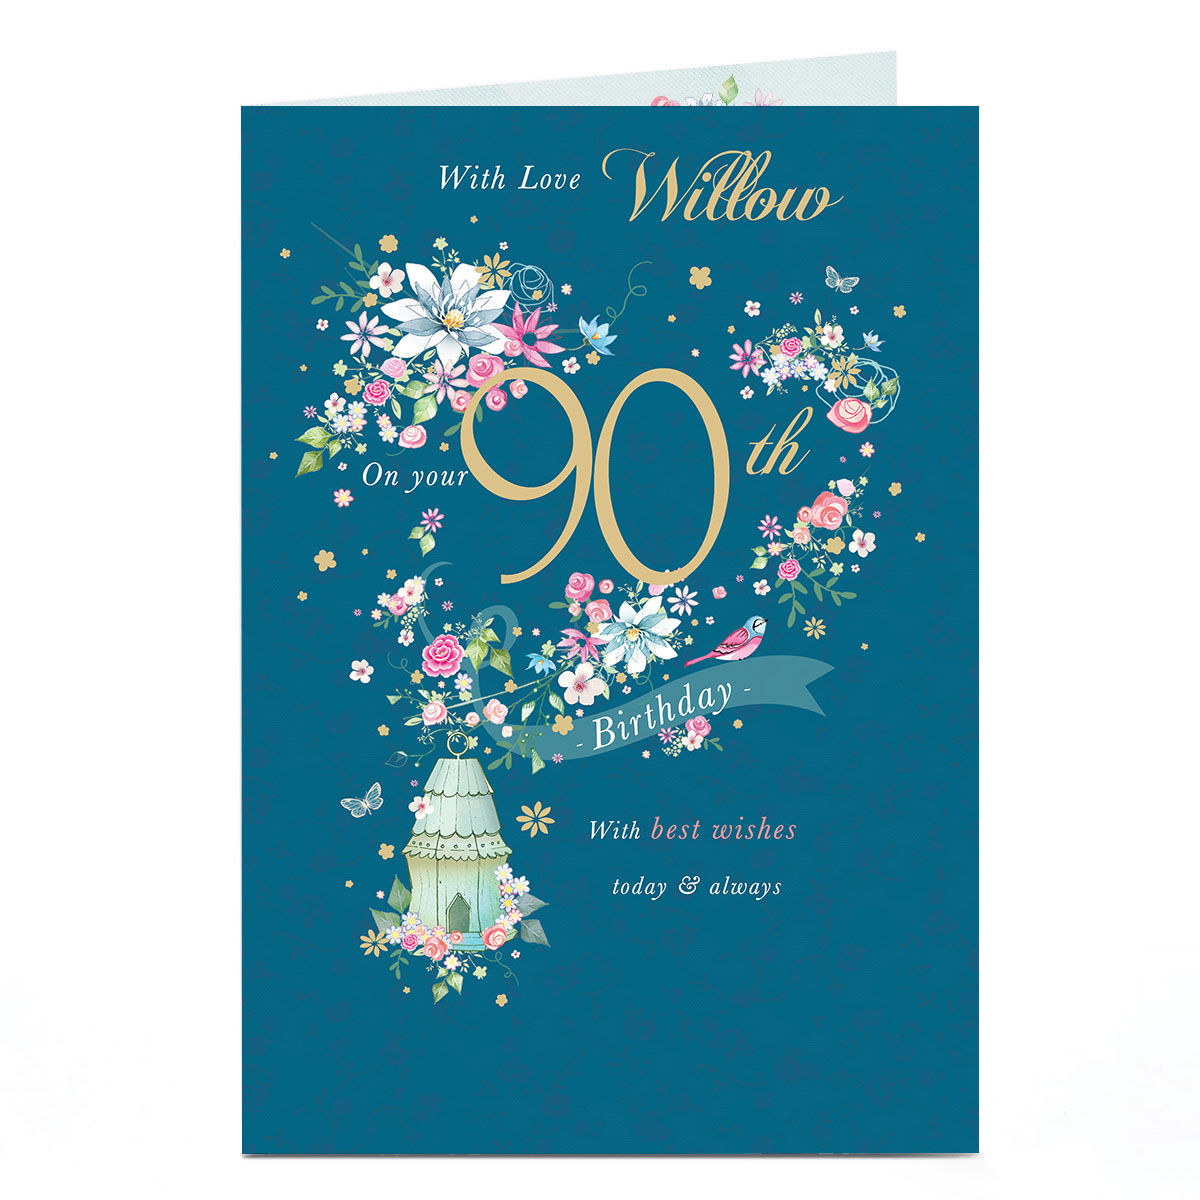 Personalised Any Age Birthday Card - Flowers & Birdhouse